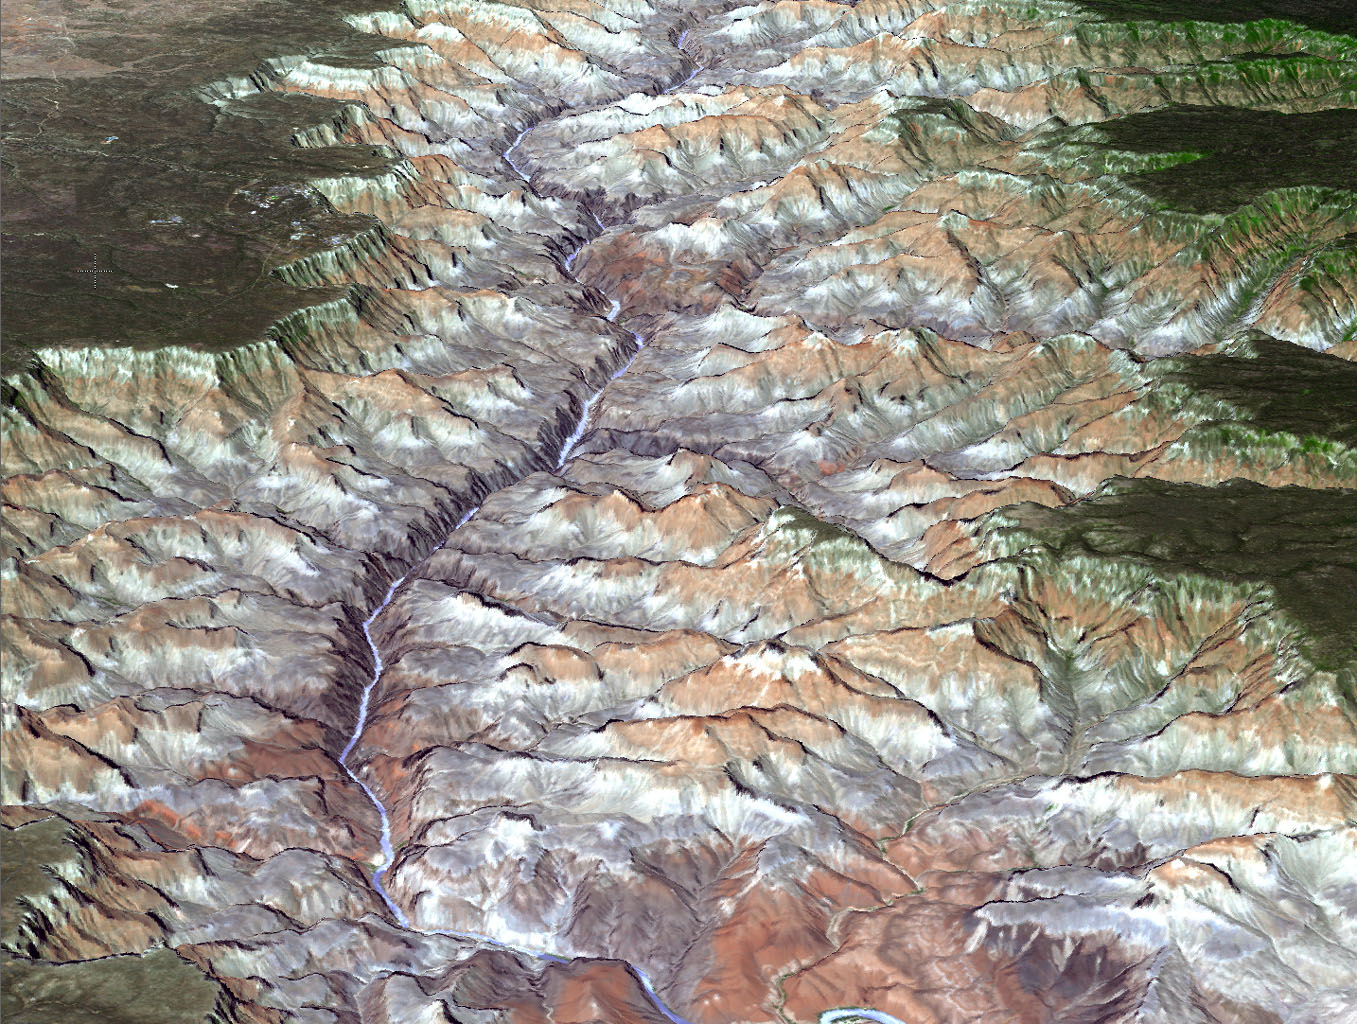 NASA's Terra spacecraft provided this view of the eastern part of Grand Canyon National Park in northern Arizona in this image on July 14, 2011. This view looks to the west, with tourist facilities of Grand Canyon Village visible in the upper left.